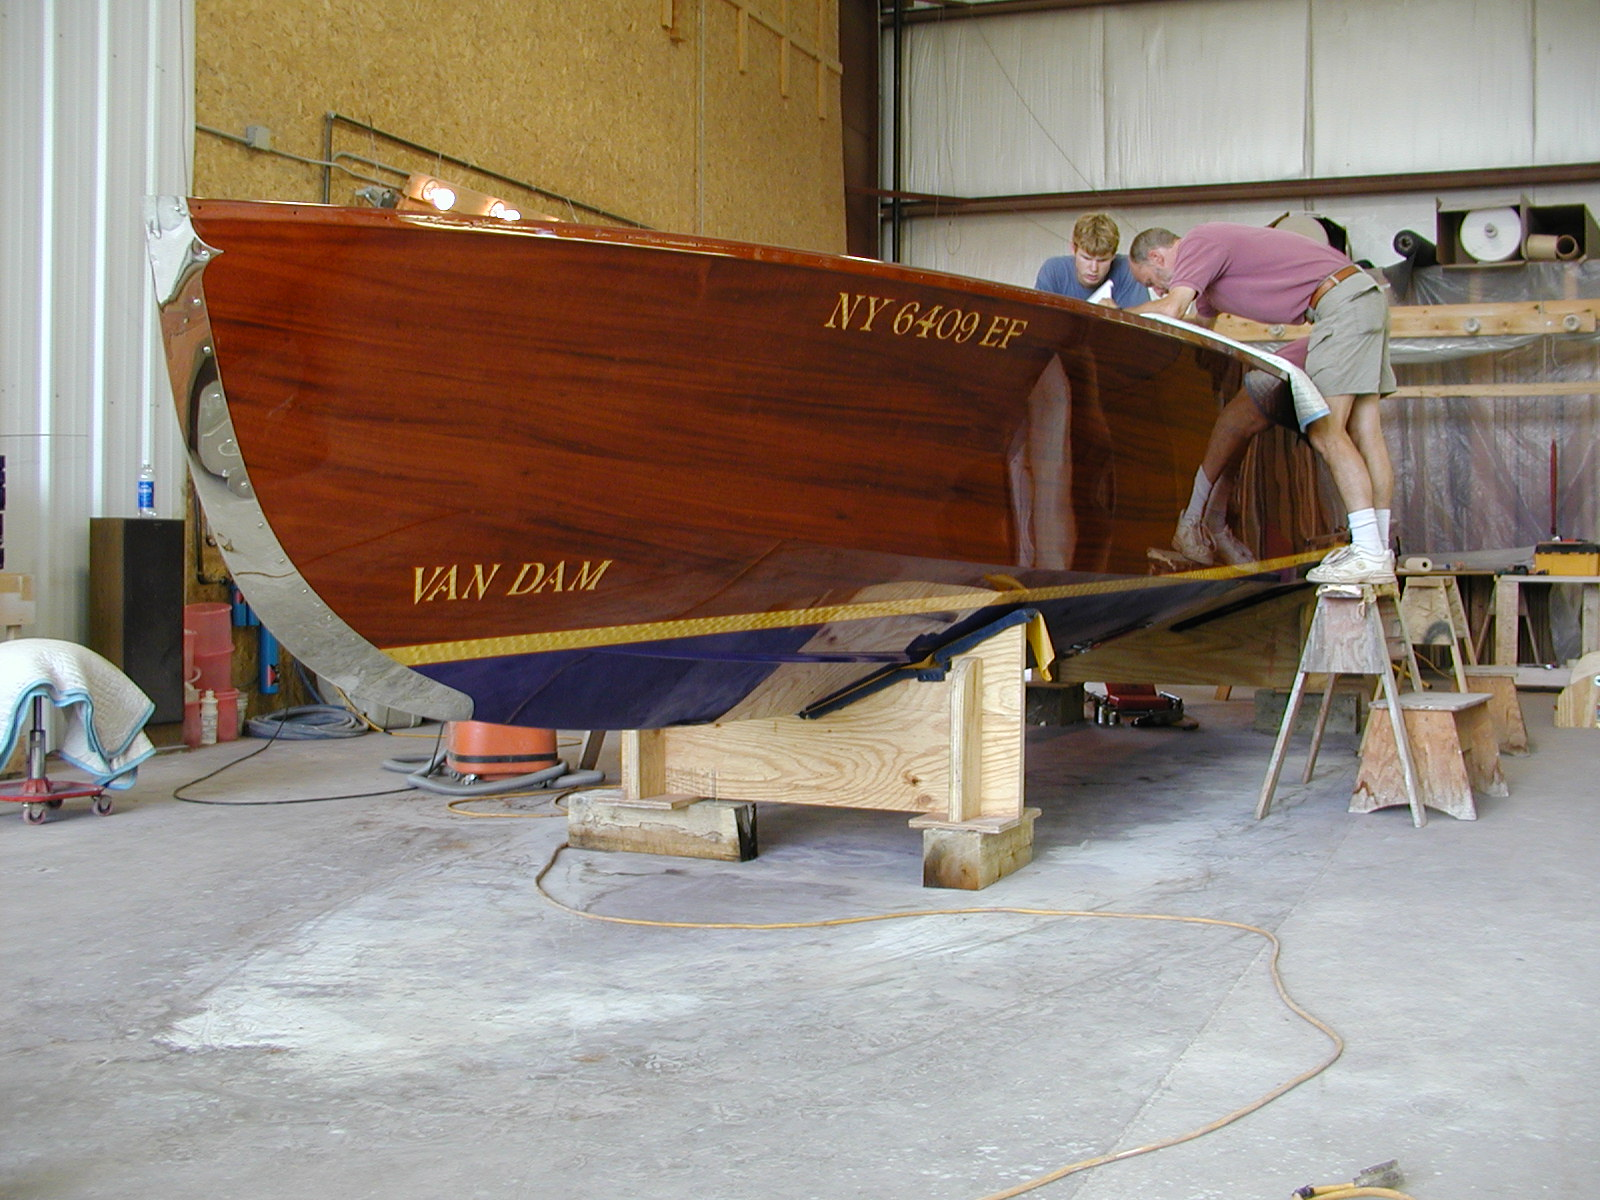 Reviewing interior work on Jacqueline